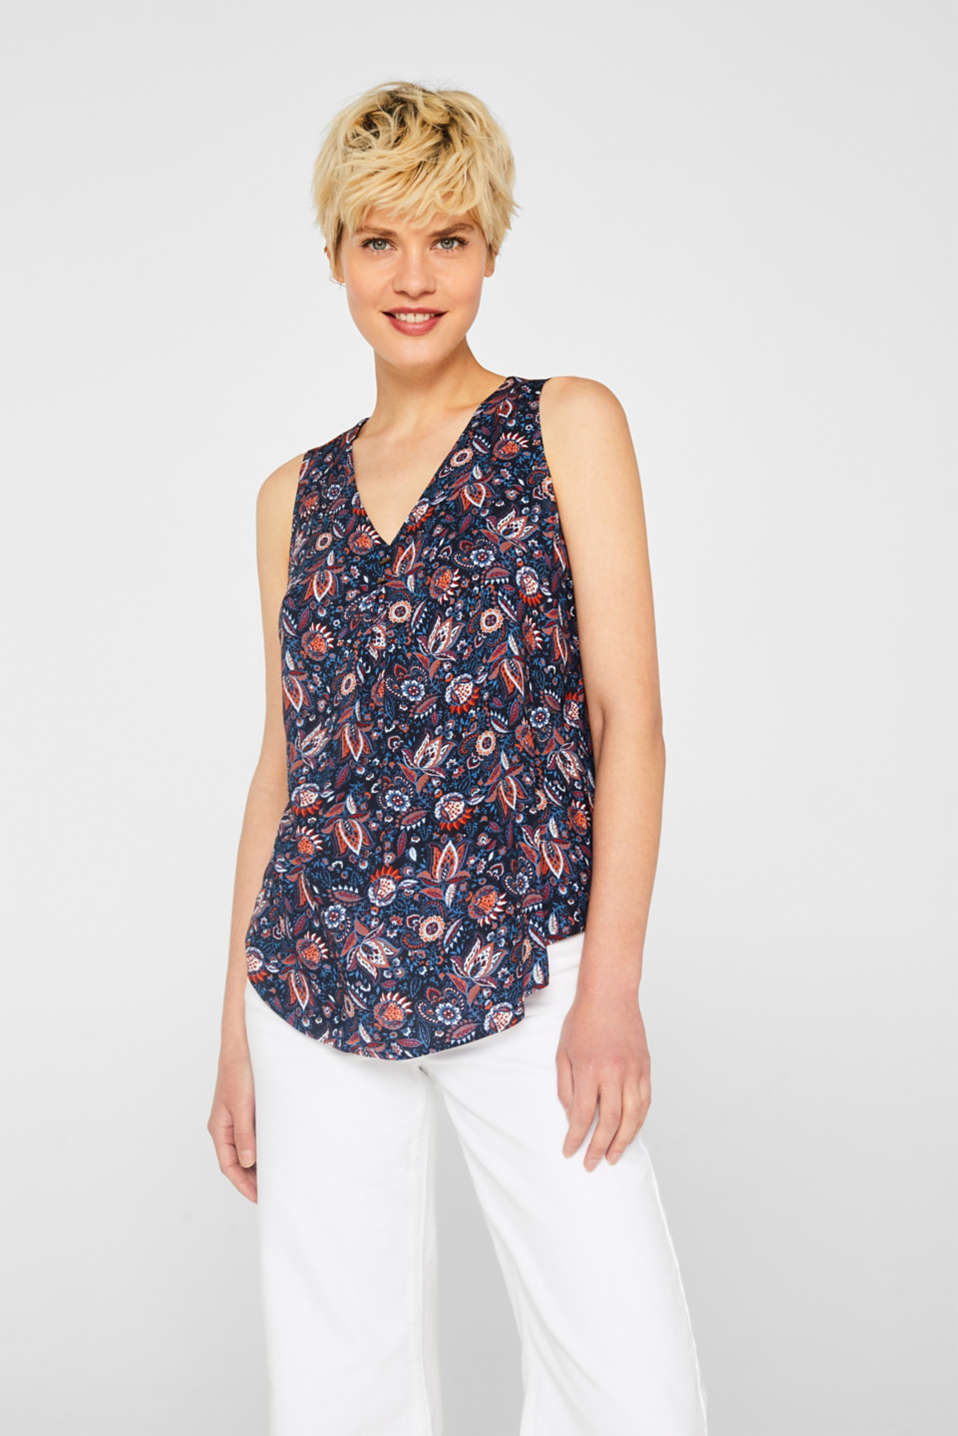 Esprit - Blouse top with a flower and paisley print